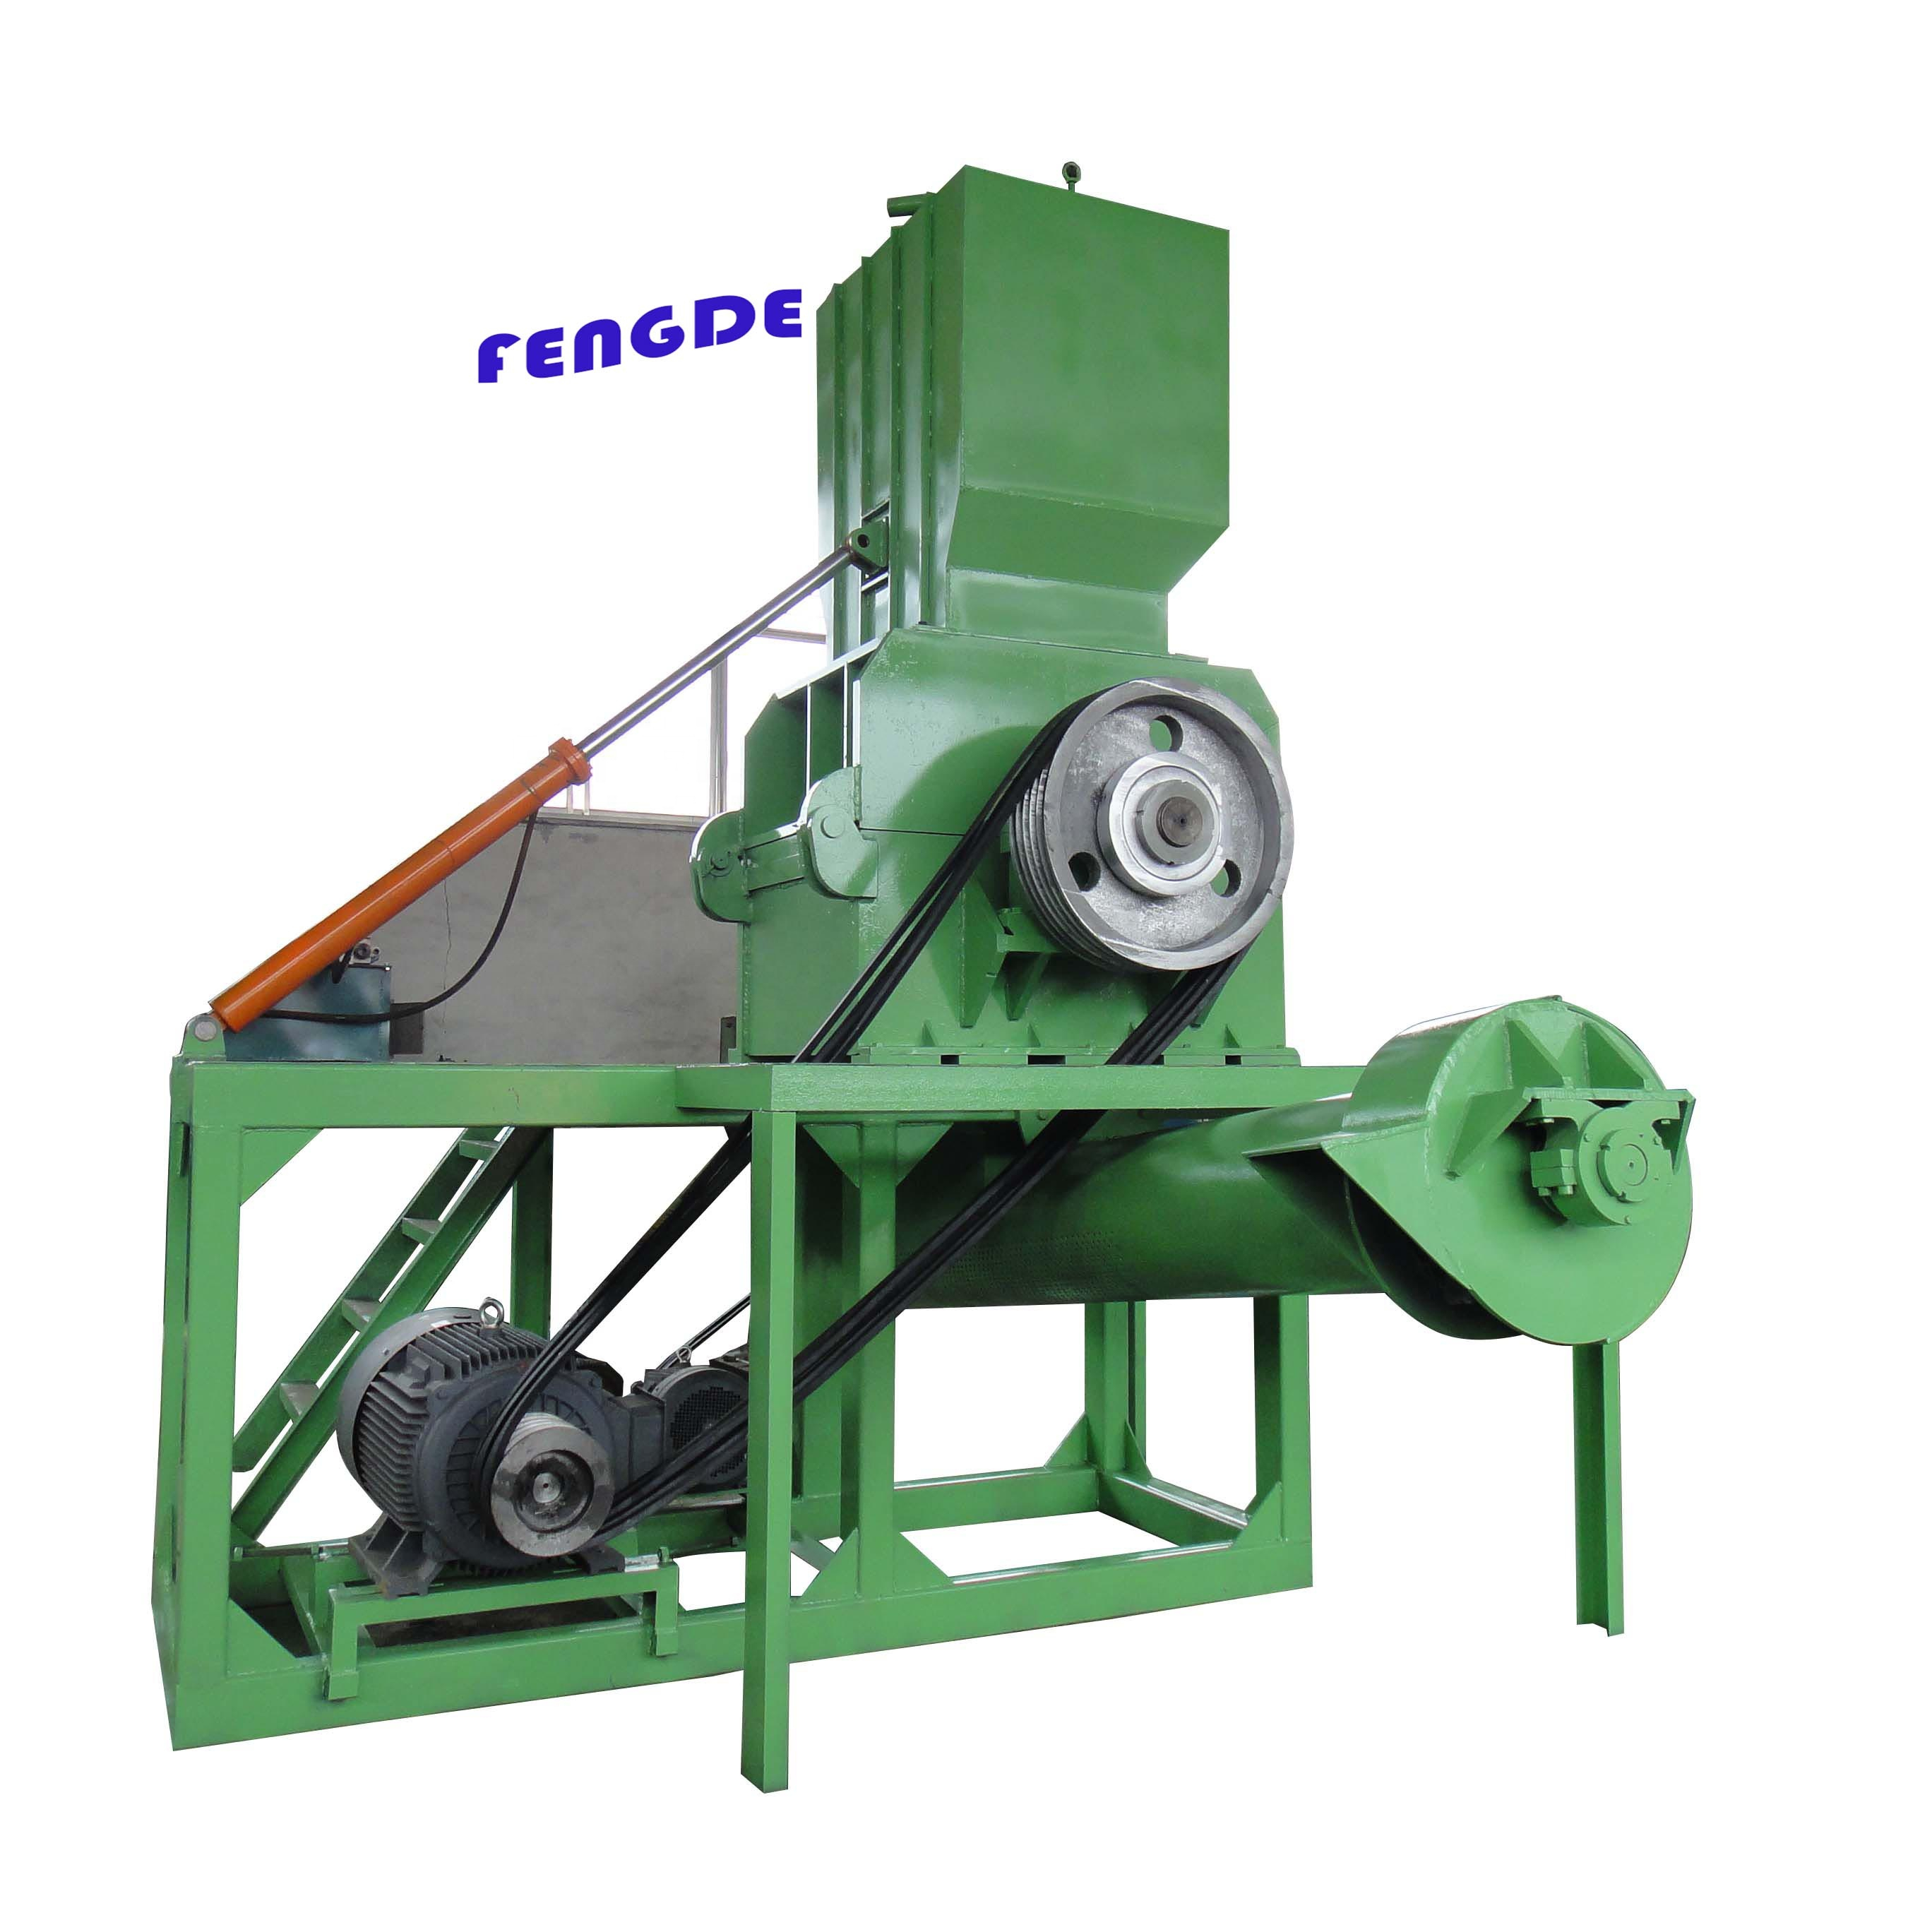 Shredder machine plastic/papier/hout/band afval recycling dubbele as shedder machine